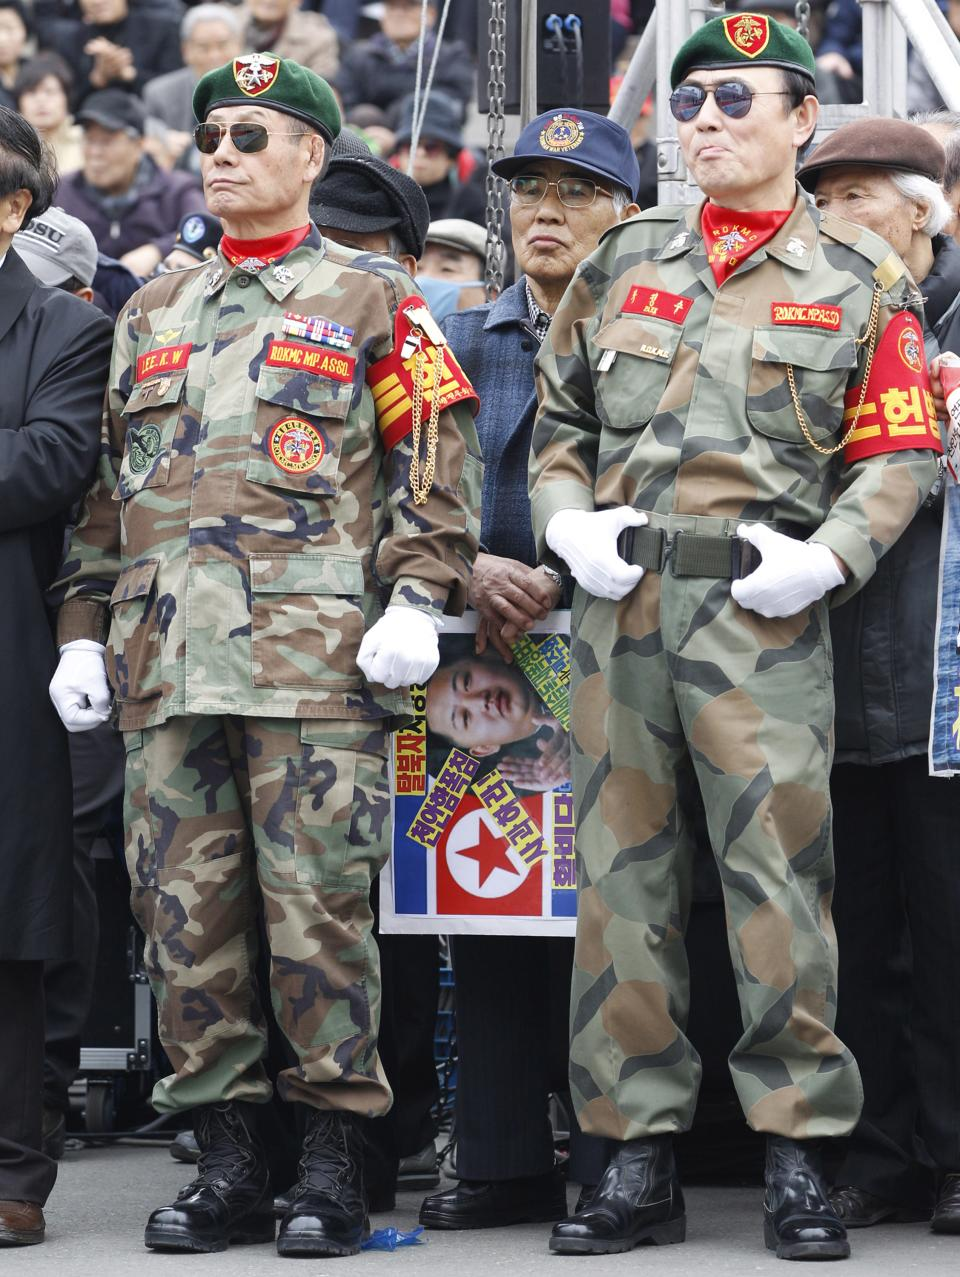 South Korean war veterans take part in an anti-North Korea rally in Seoul, South Korea, Friday, March 16, 2012. North Korea announced Friday it will launch a long-range rocket mounted with a satellite in honor of late President Kim Il Sung's April birthday. (AP Photo/Lee Jin-man)